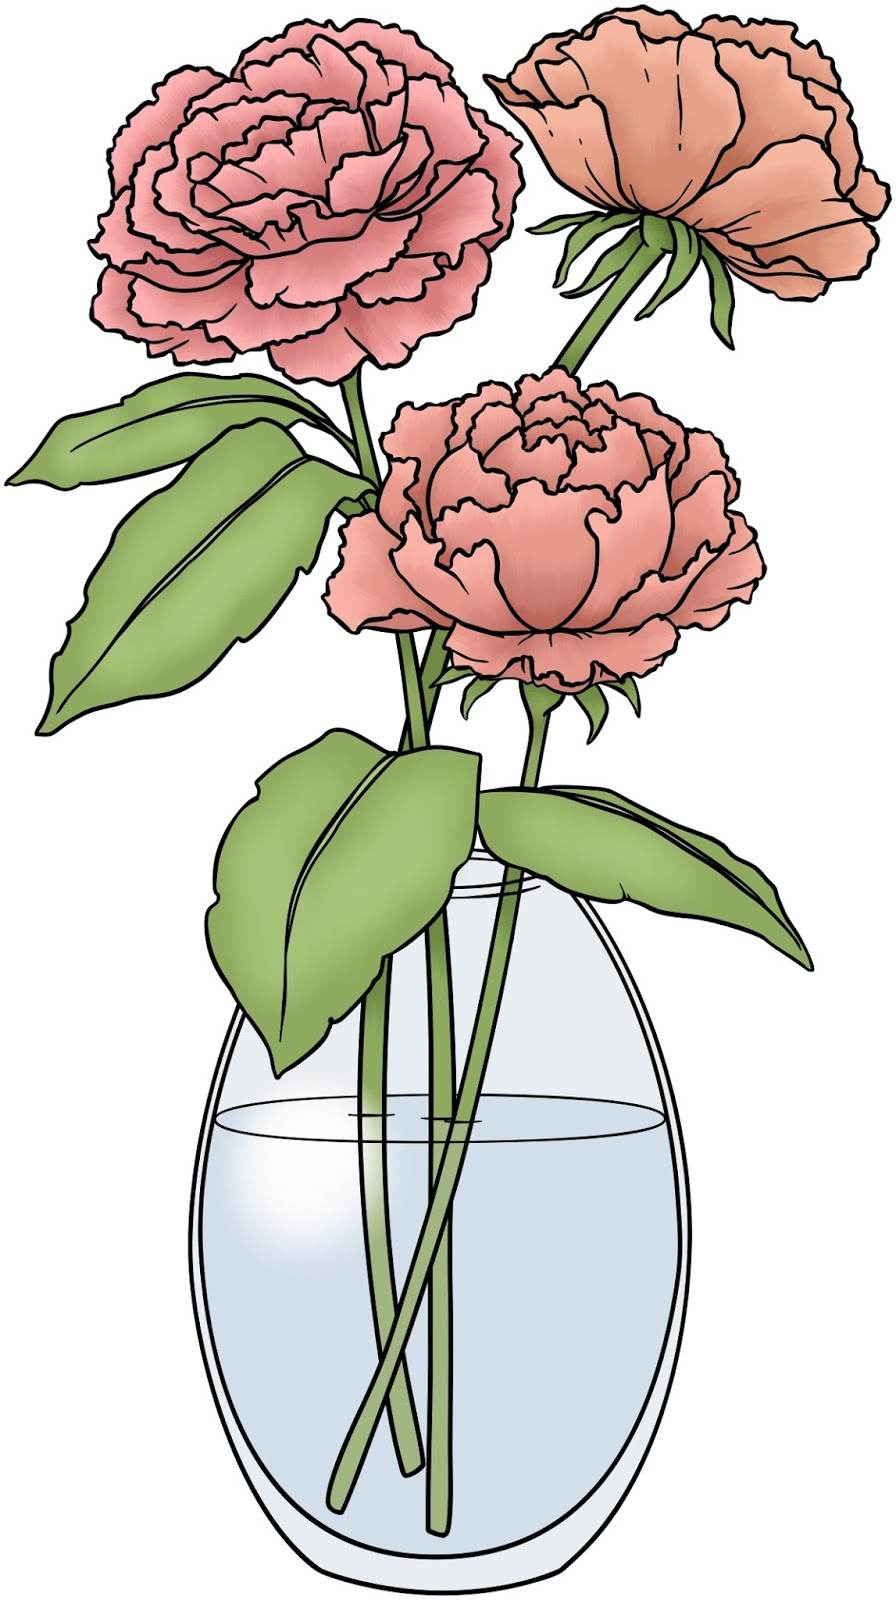 Drawn peony vector In vase a  Remastered: